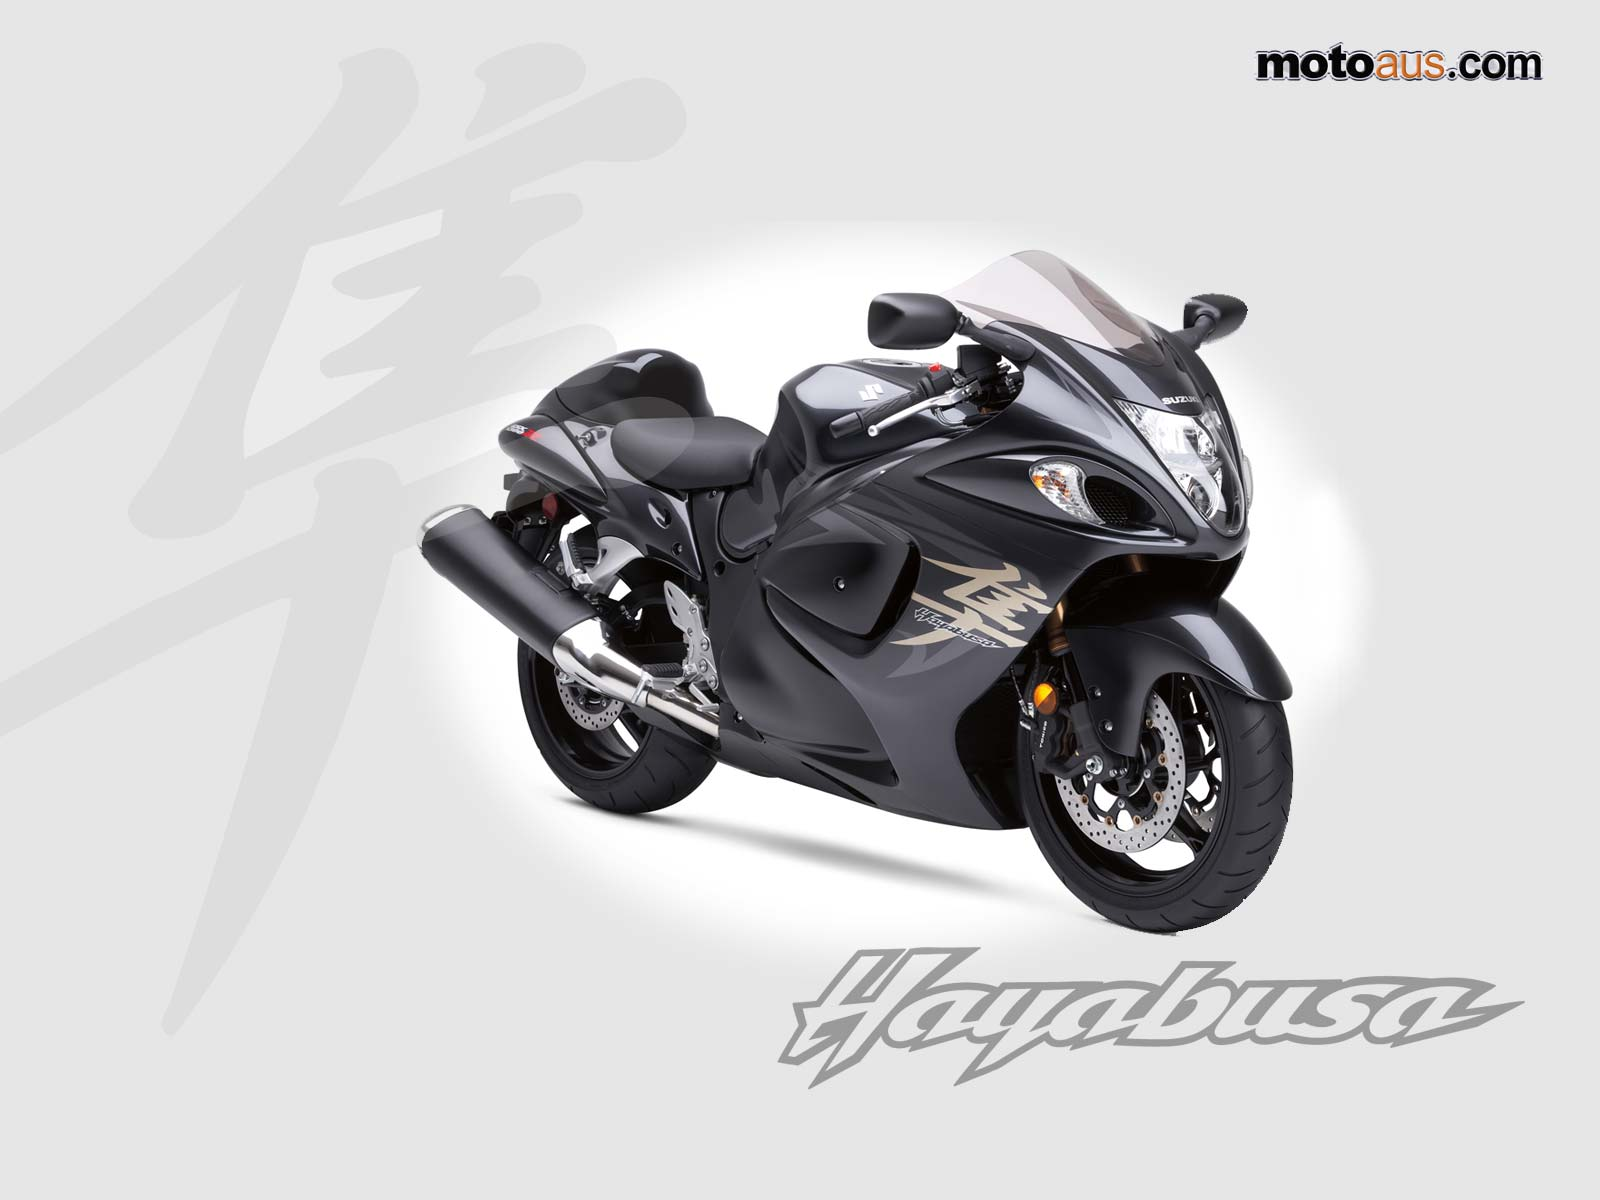 Super & Heavy Bikes: Suzuki Hayabusa Wallpapers